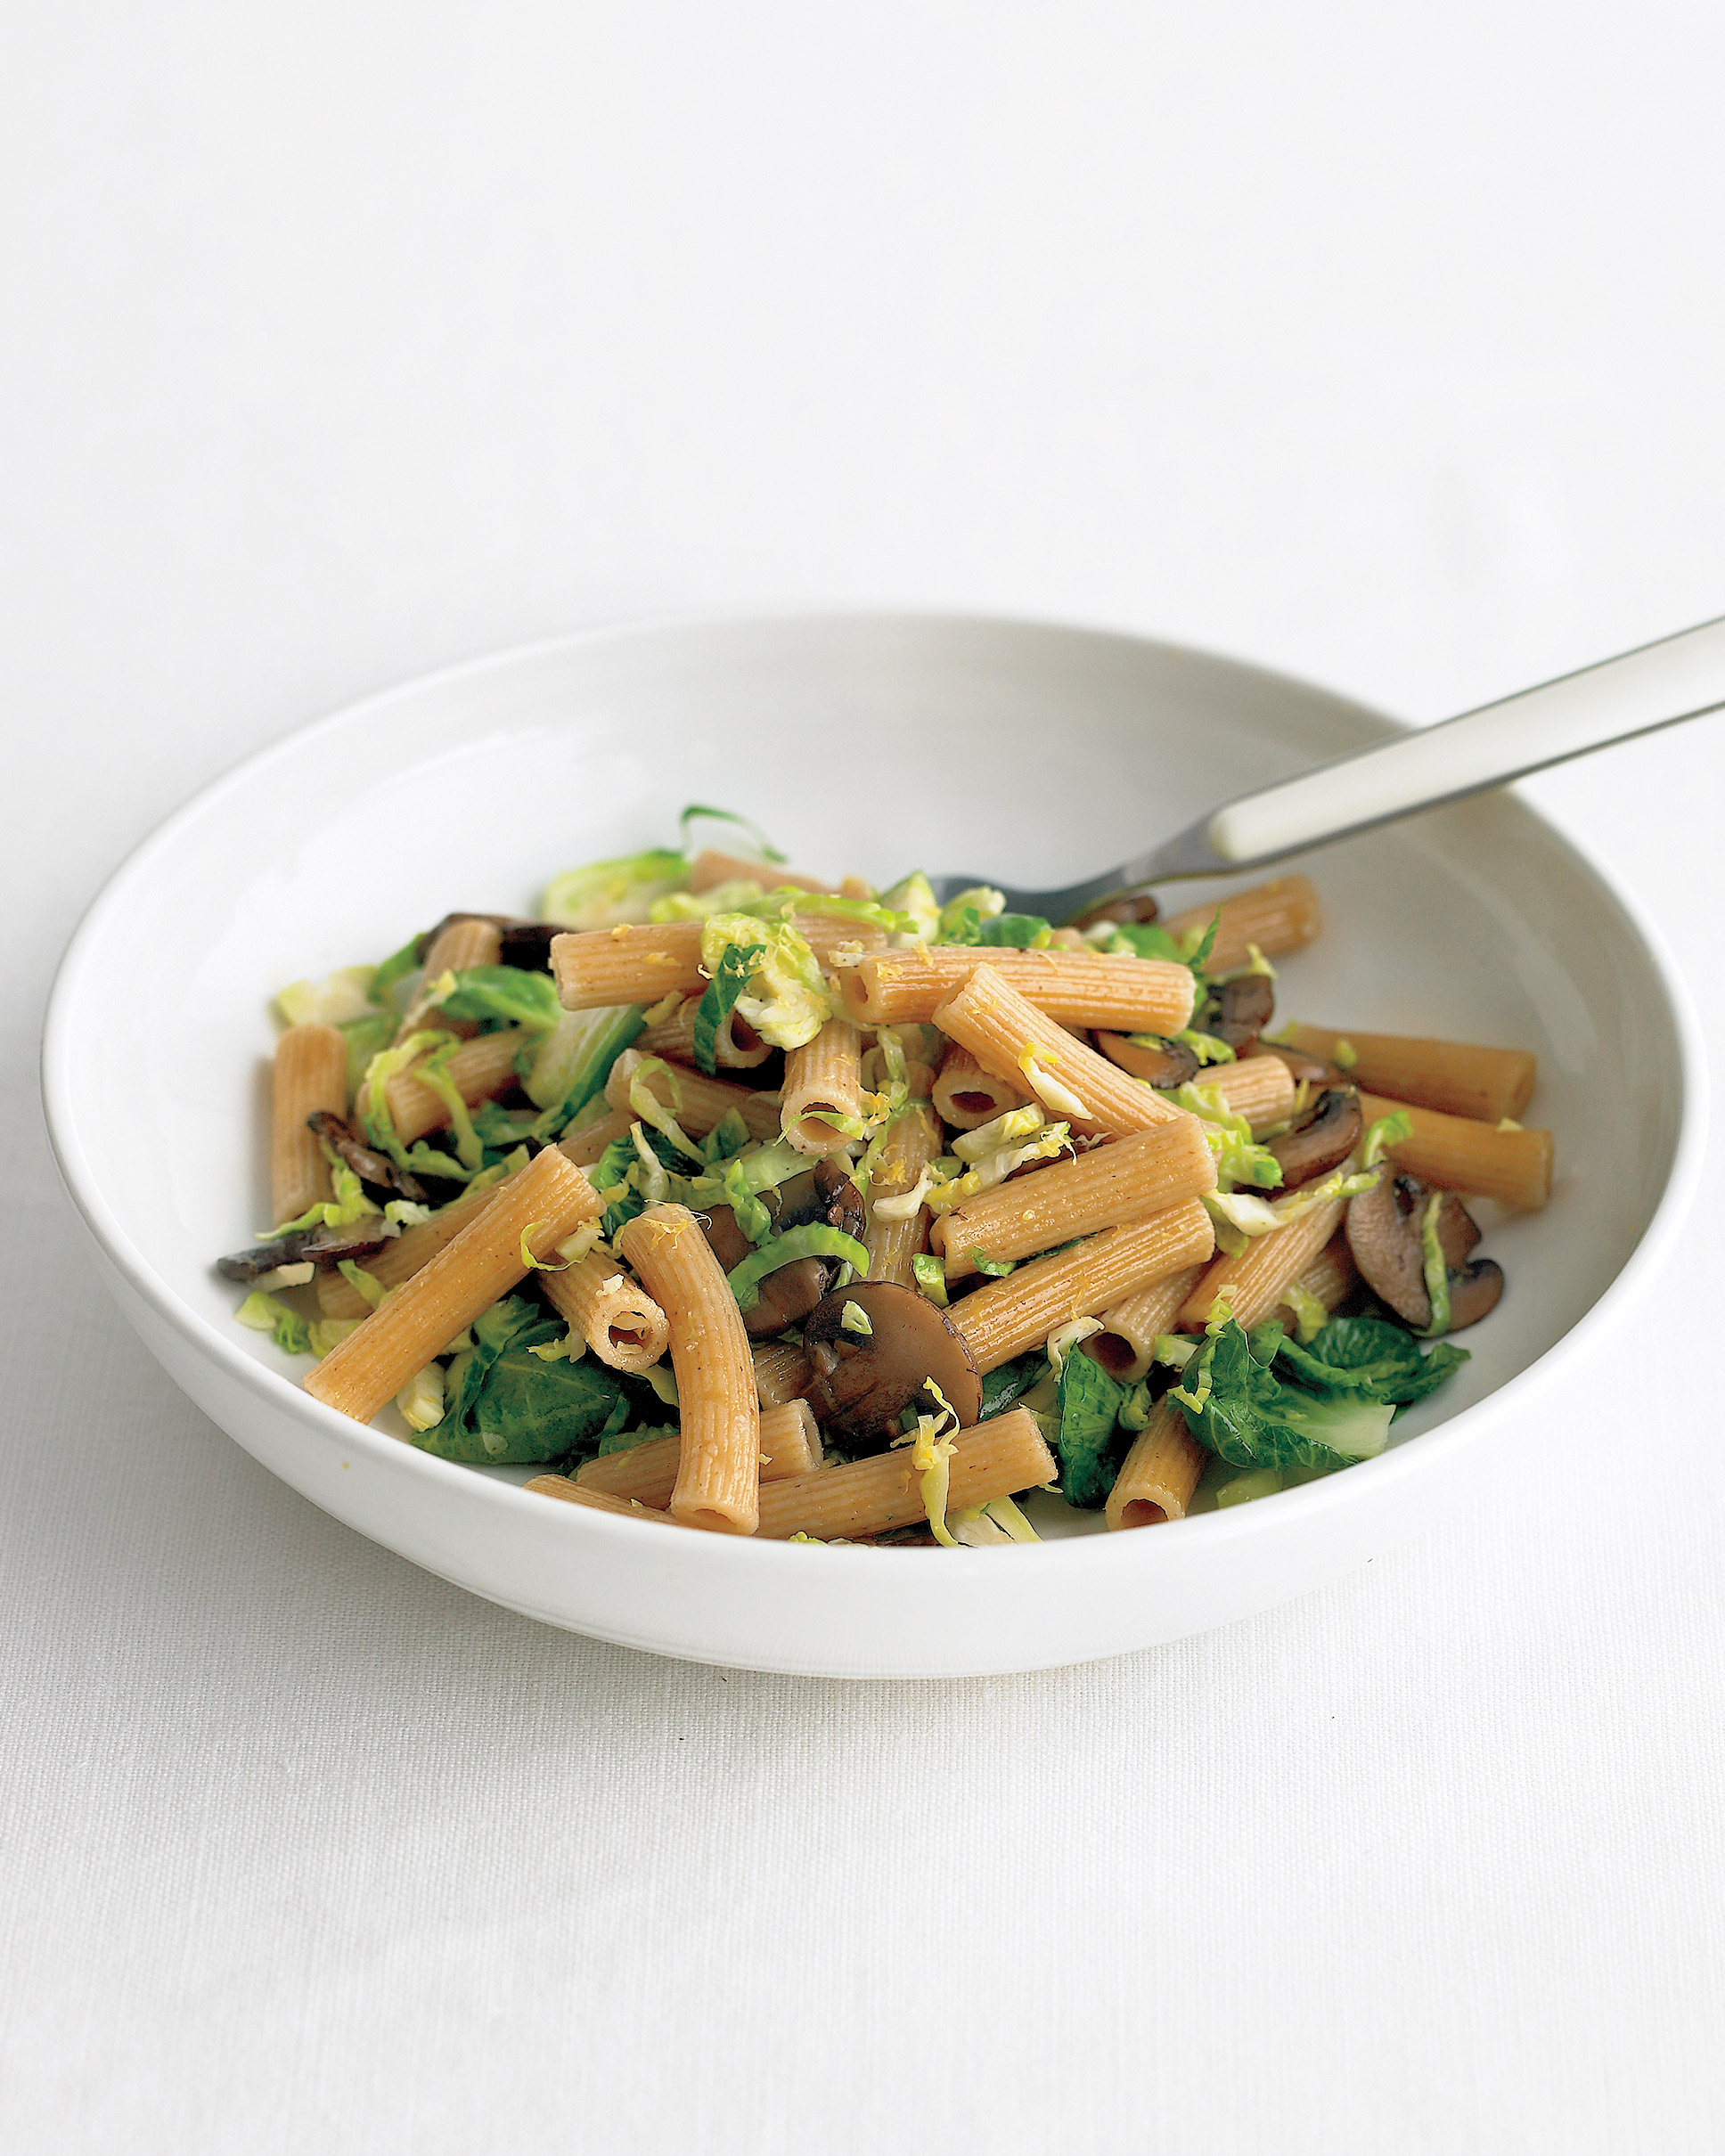 Whole-Wheat Pasta with Brussels Sprouts and Mushrooms